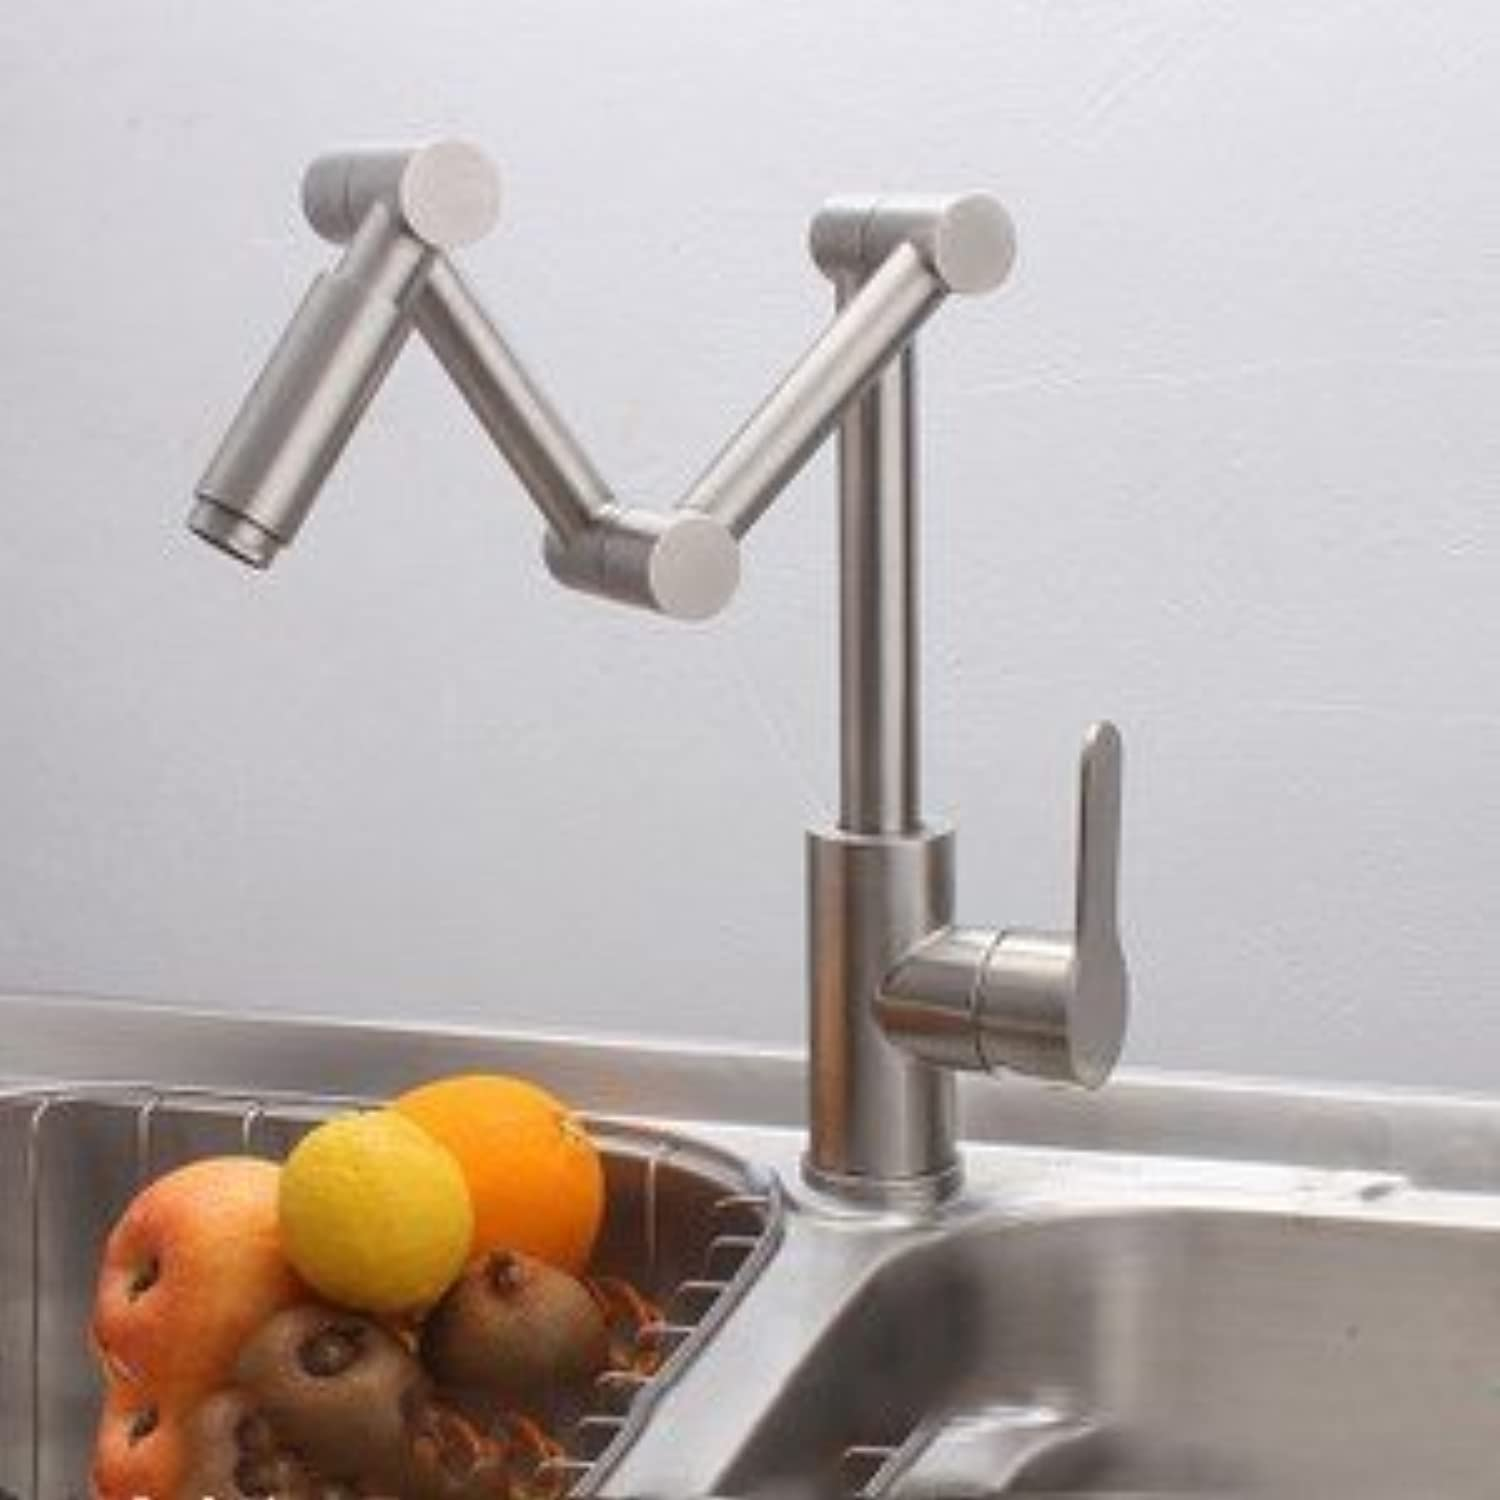 Diongrdk Stainless Steel Faucet, Hot and Cold Faucet, Folding Sink, Washing Basin, Faucet, Kitchen Faucet.